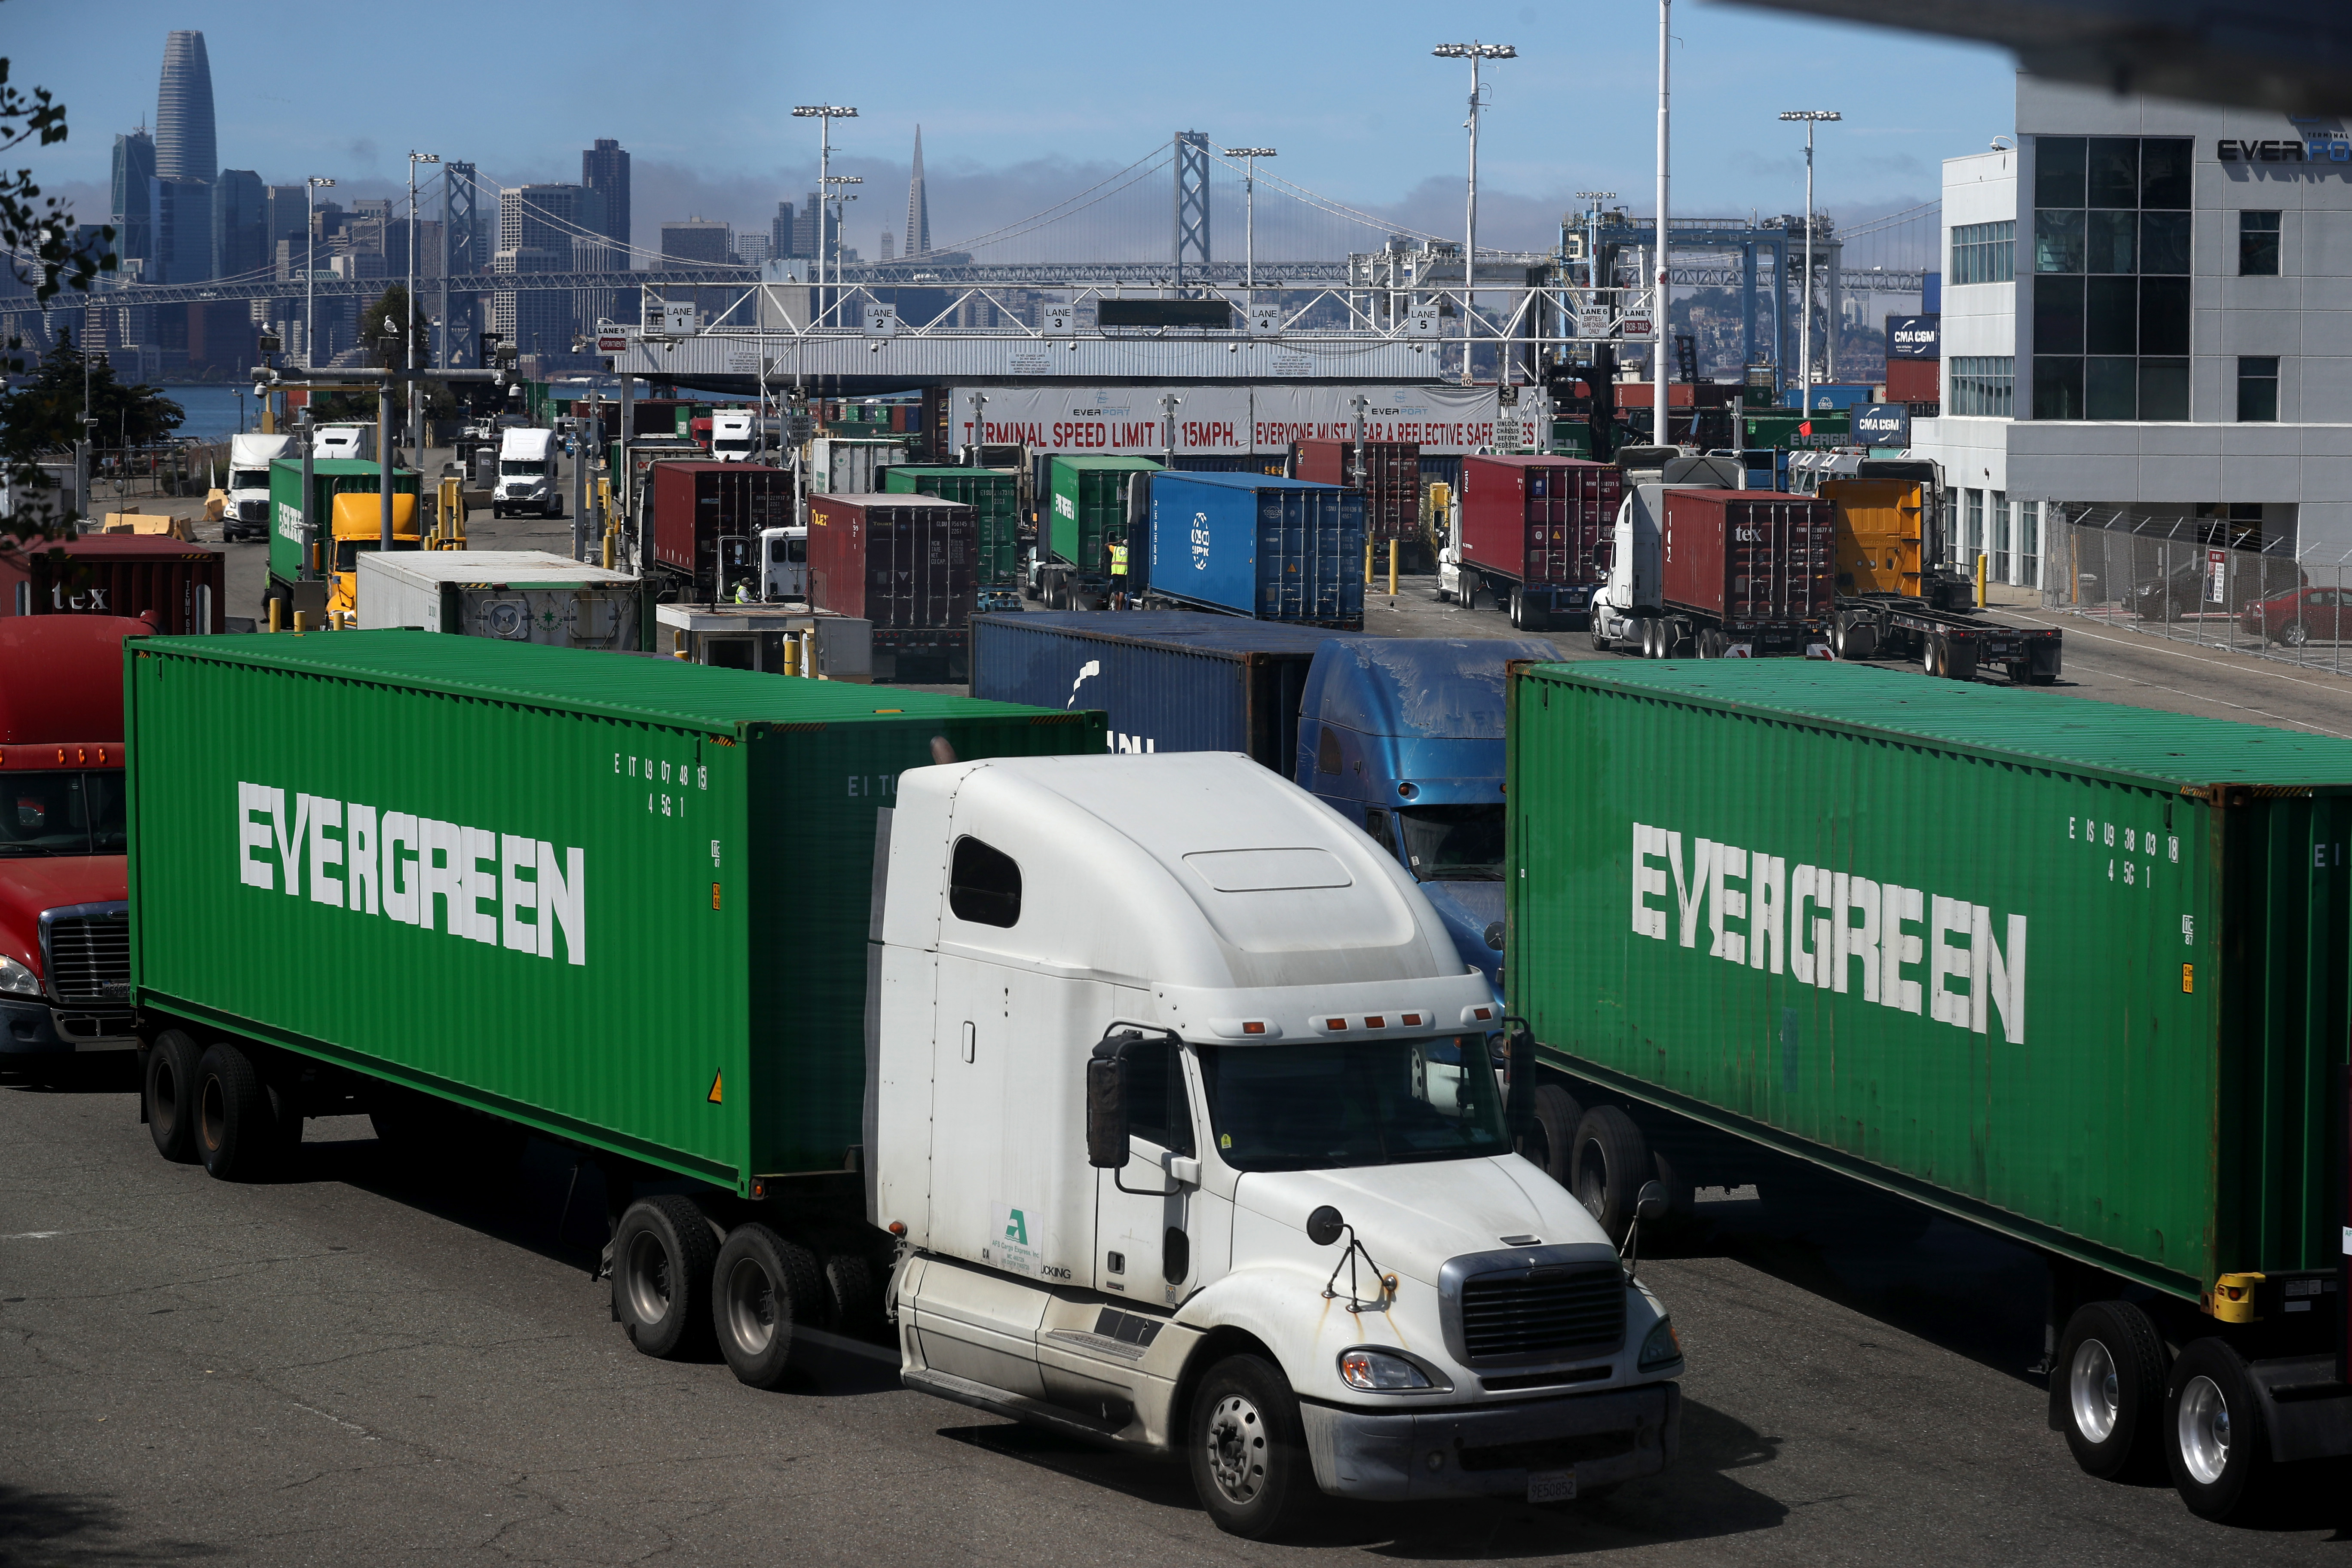 OAKLAND, CALIFORNIA - SEPTEMBER 03: Trucks move containers in and out of the Ben E. Nutter terminal at the Port of Oakland on September 03, 2019 in Oakland, California. The Dow Jones Industrial Average fell nearly 300 points on Tuesday as the United States imposed 15% tariffs on some Chinese goods this past Sunday and China also imposed new charges on products from the United States. (Photo by Justin Sullivan/Getty Images)